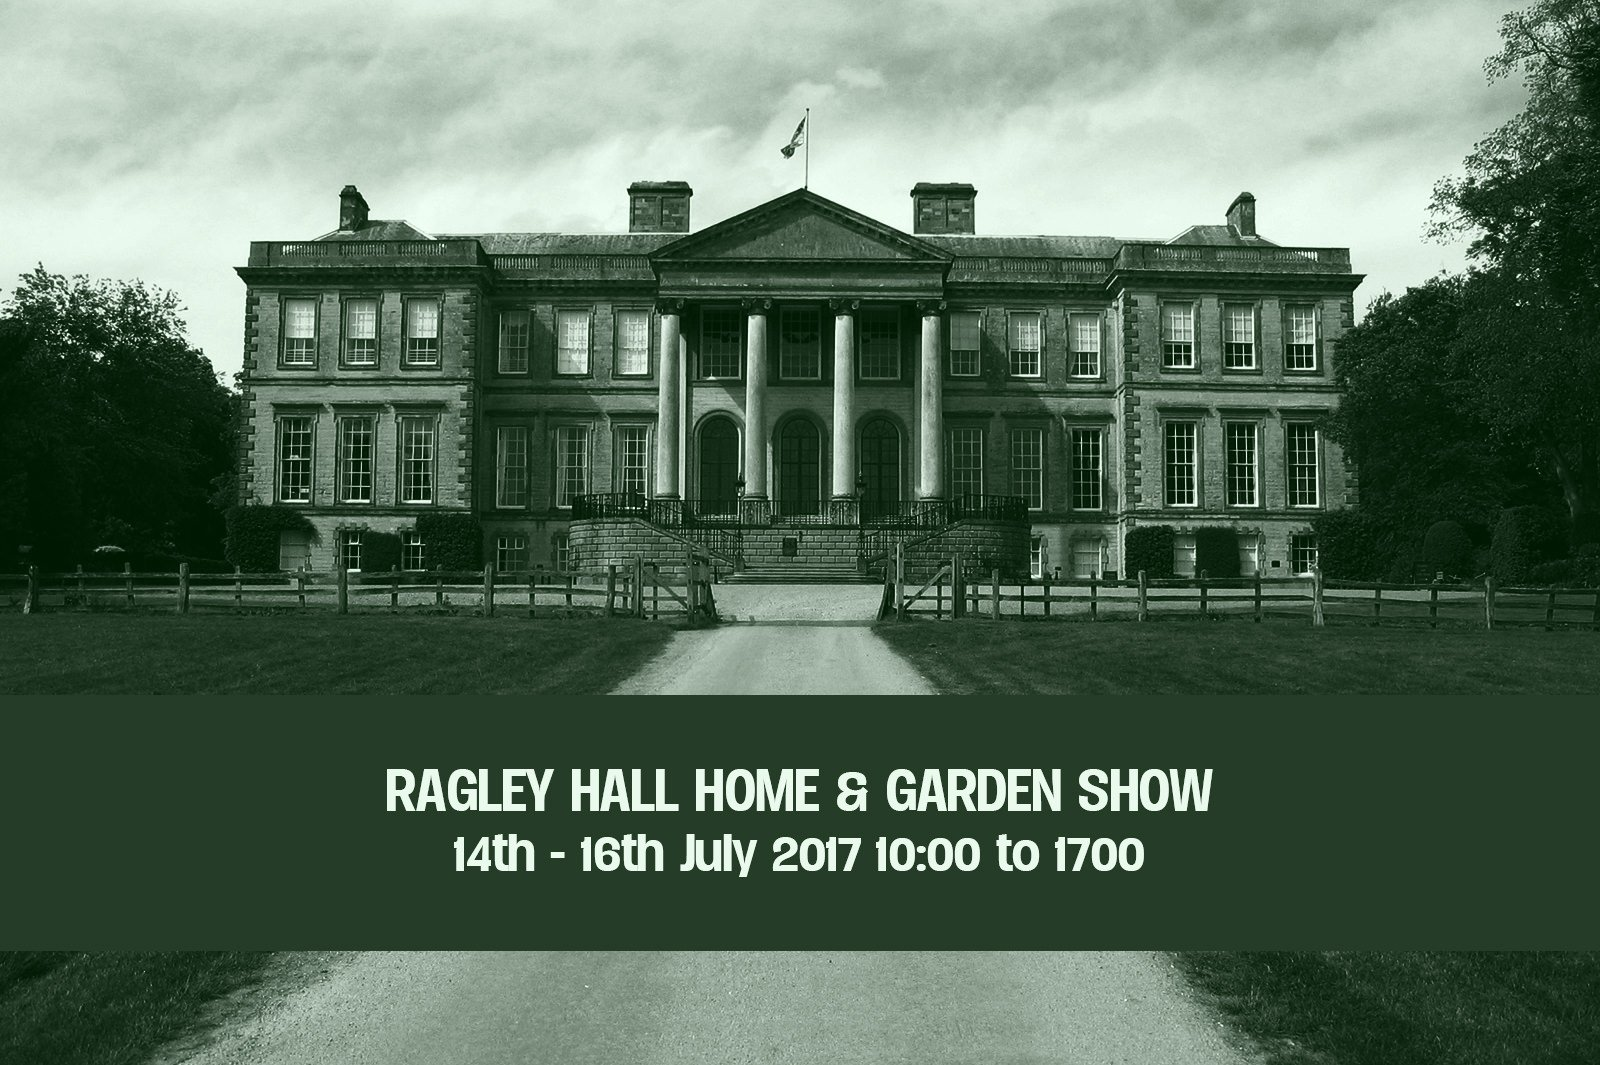 Ragley Hall Home & Garden Show – 14th July to 16th July 2017